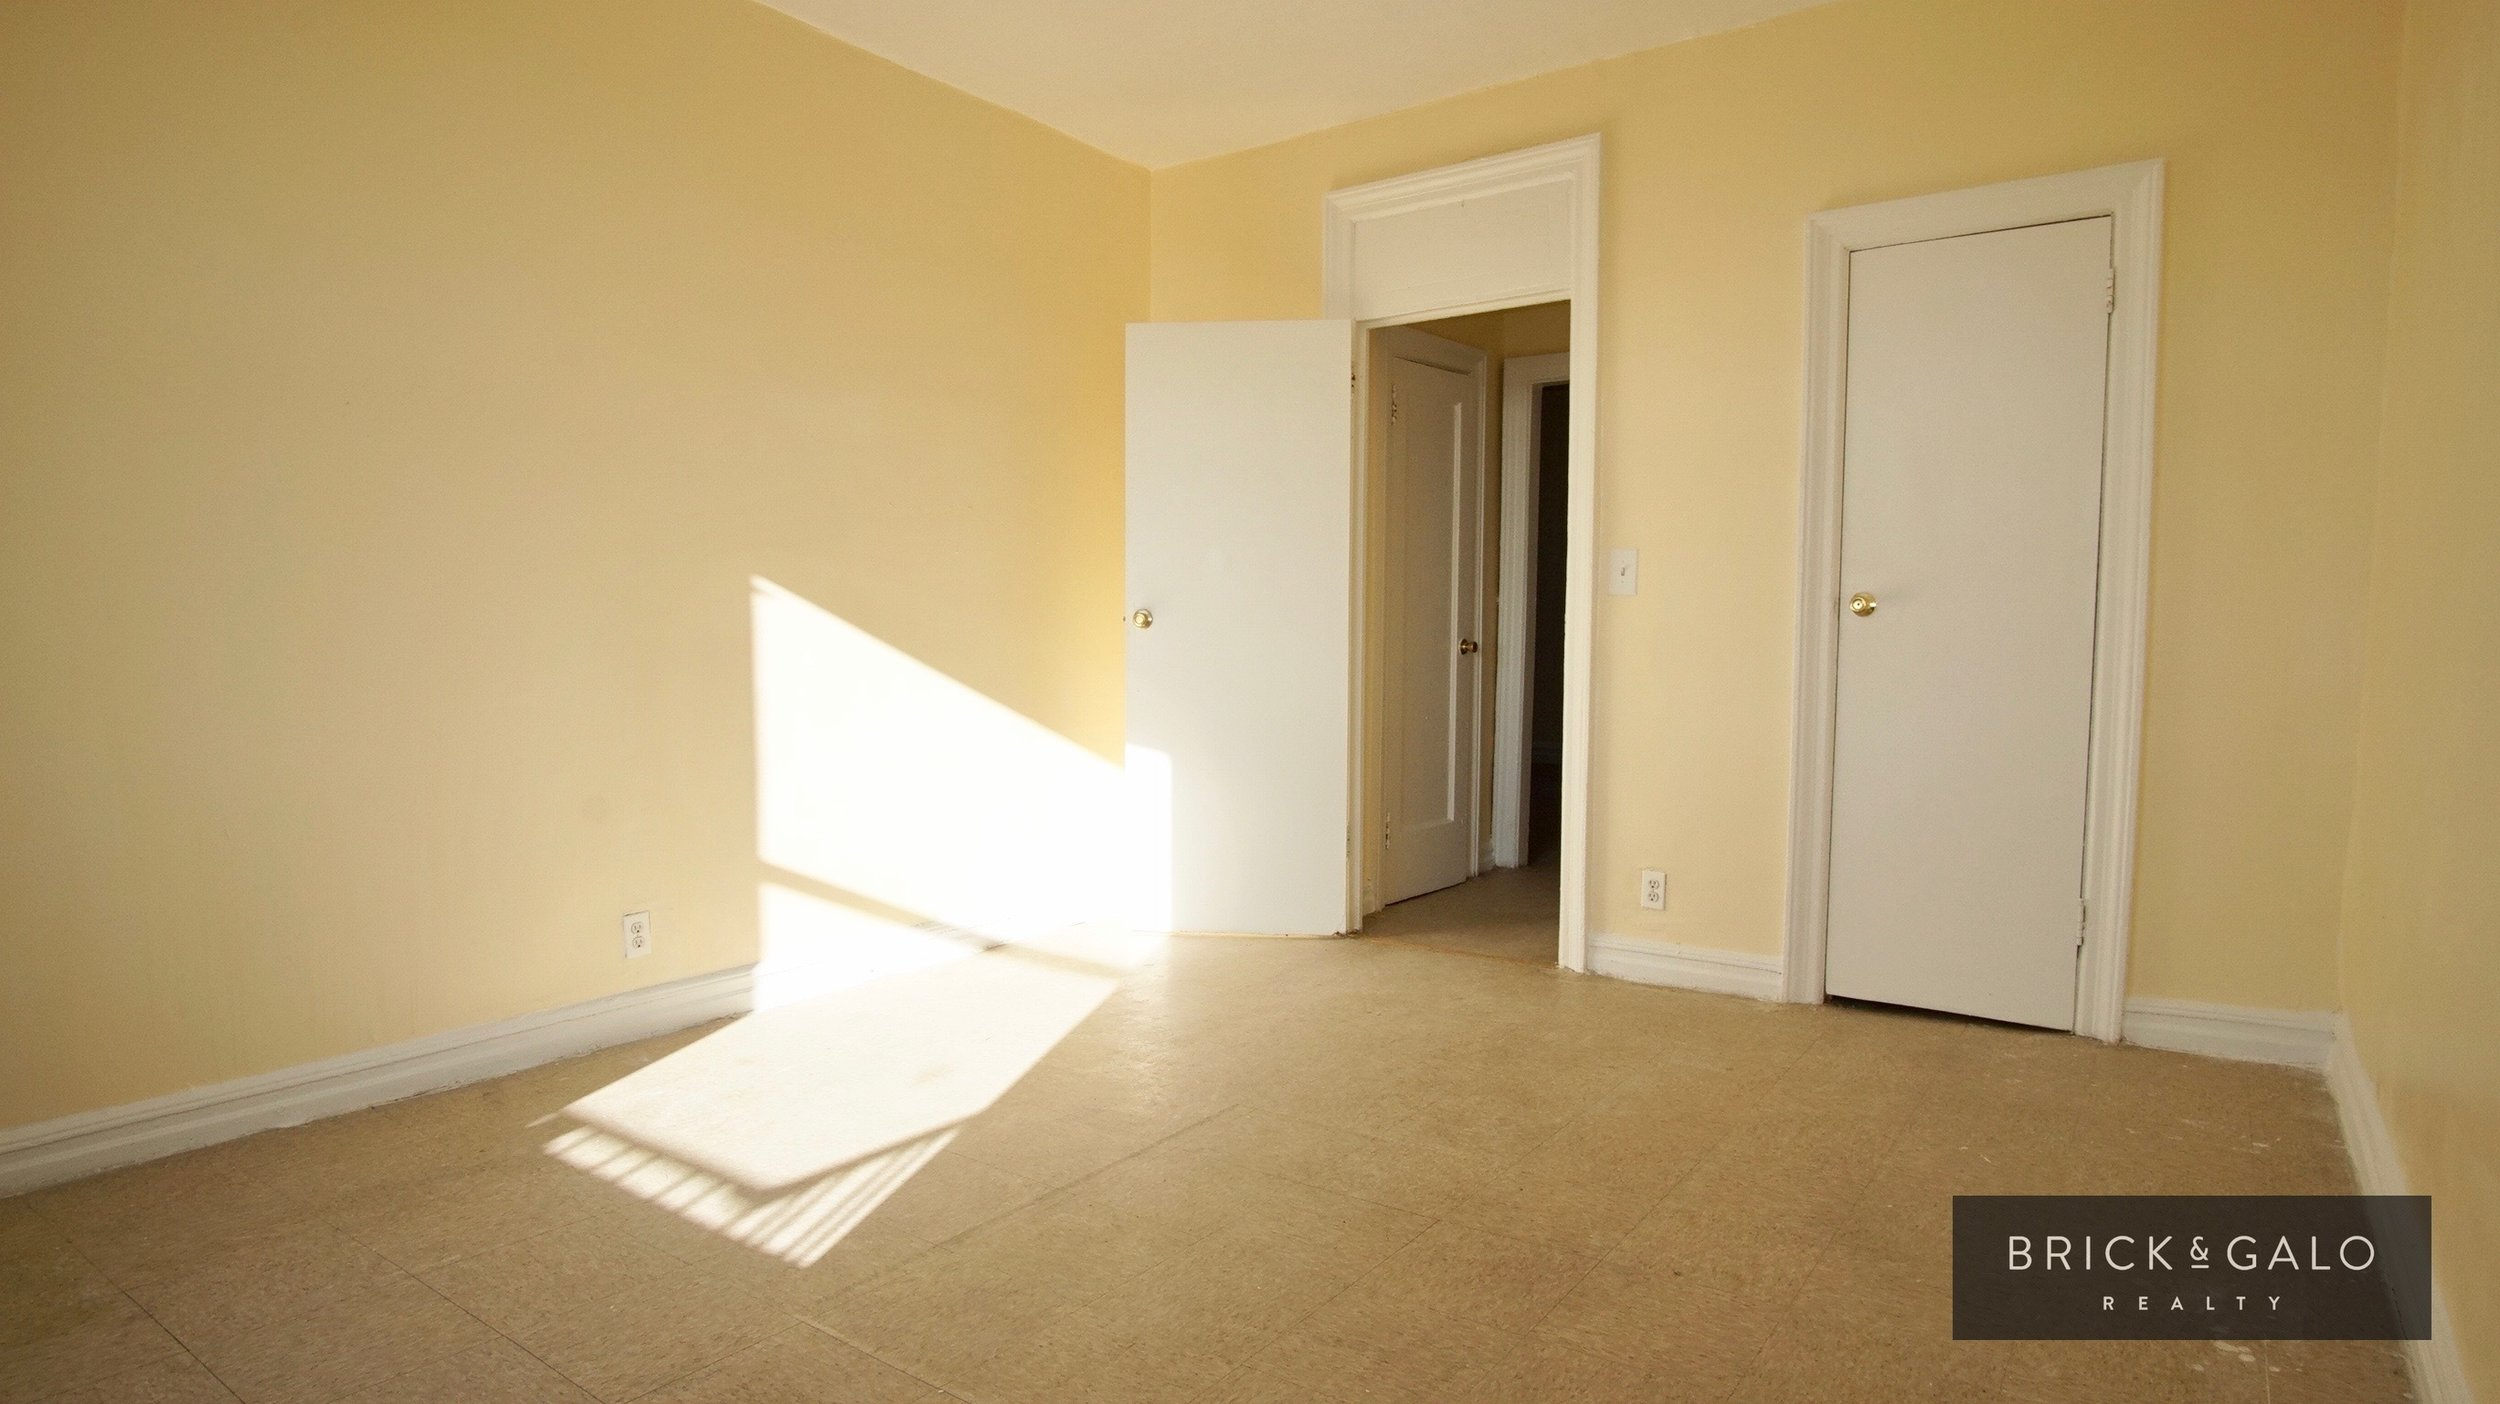 769 Bryant Ave  2 bed - 1 bath Rent  $ 1,600 -